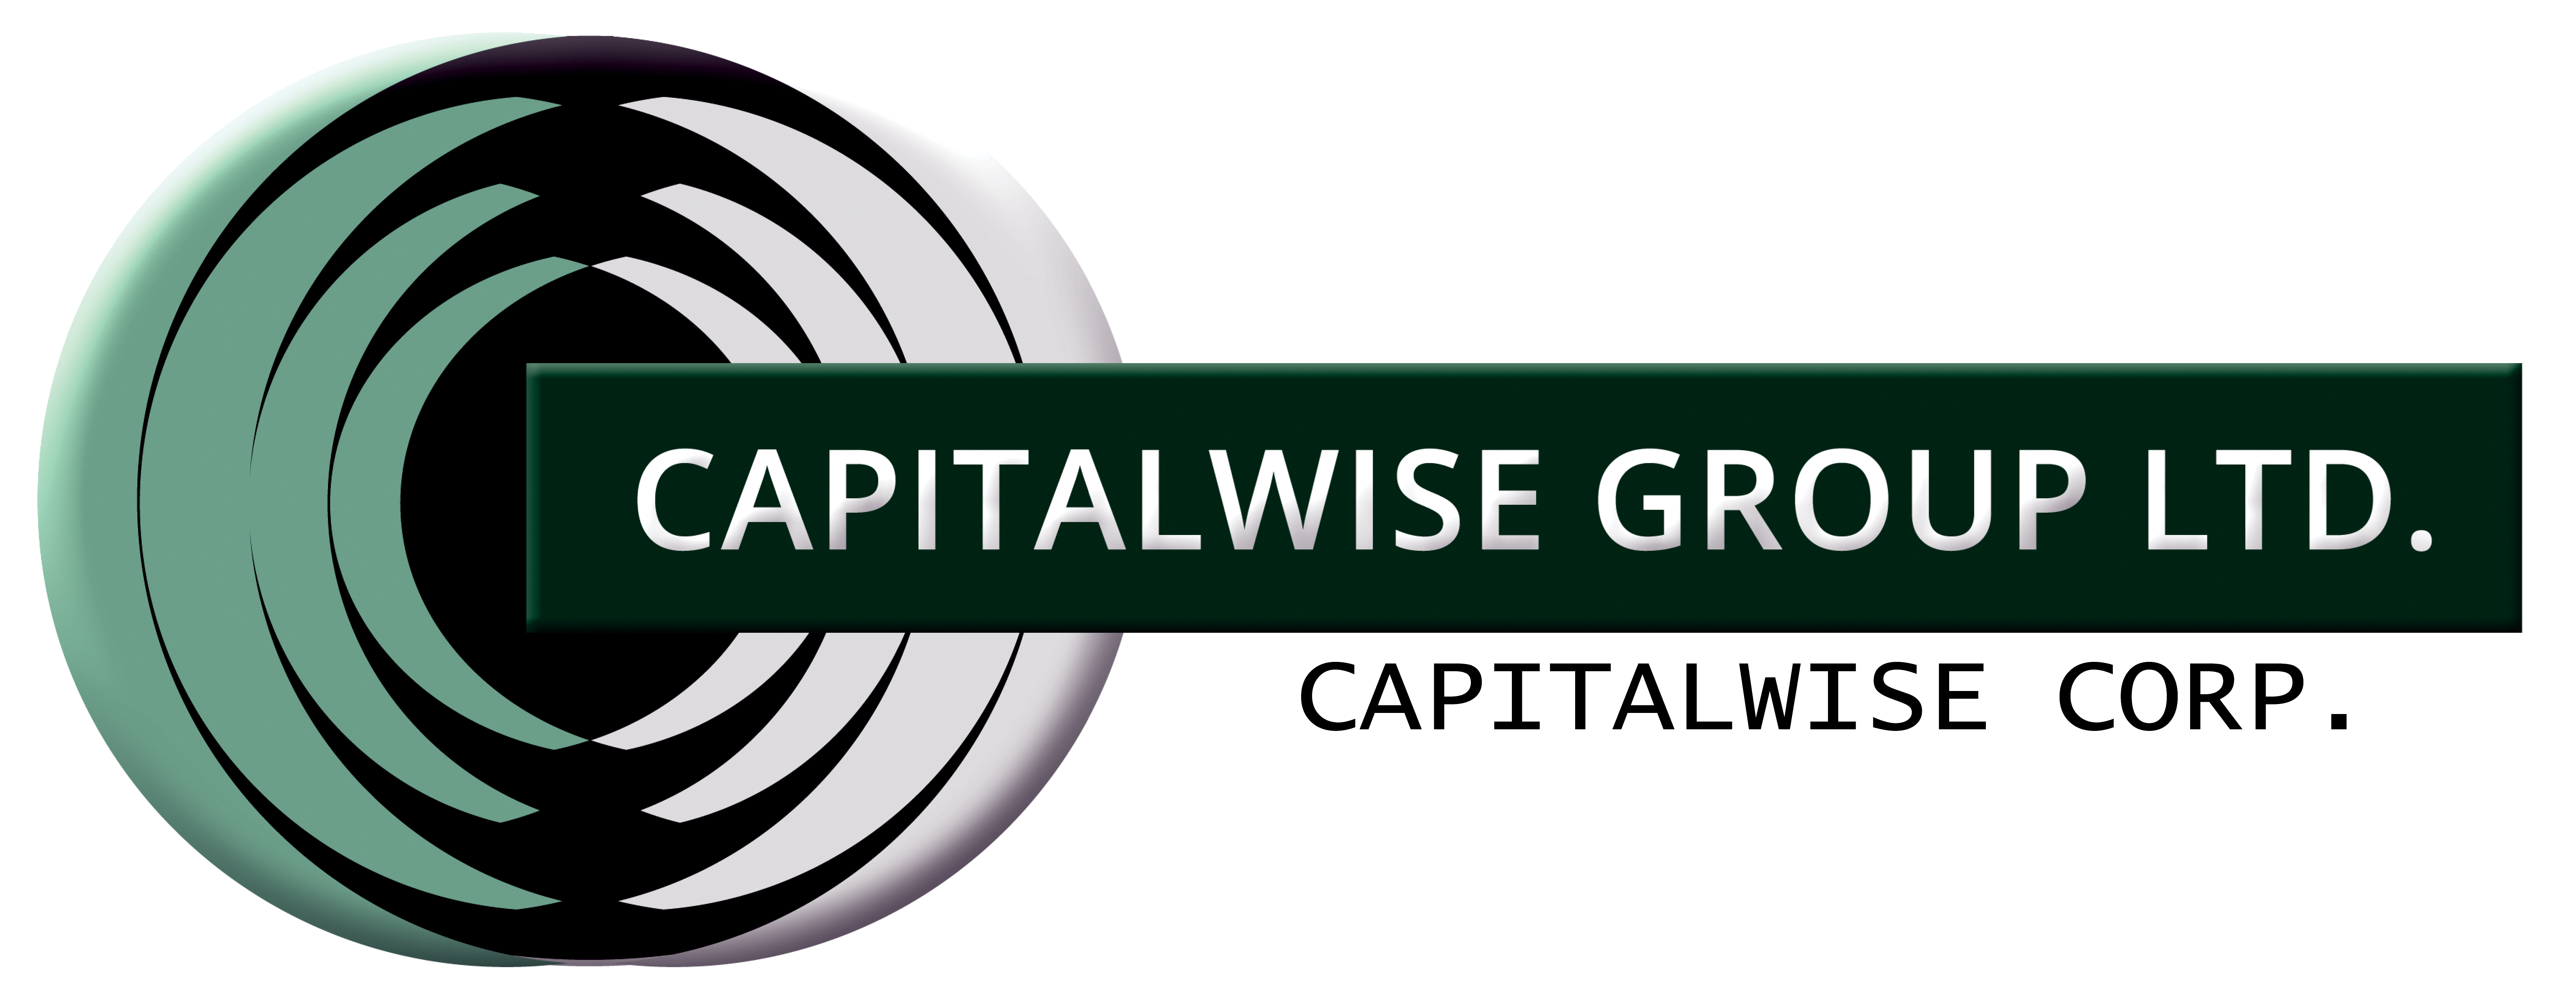 Capital Wise Group Ltd.